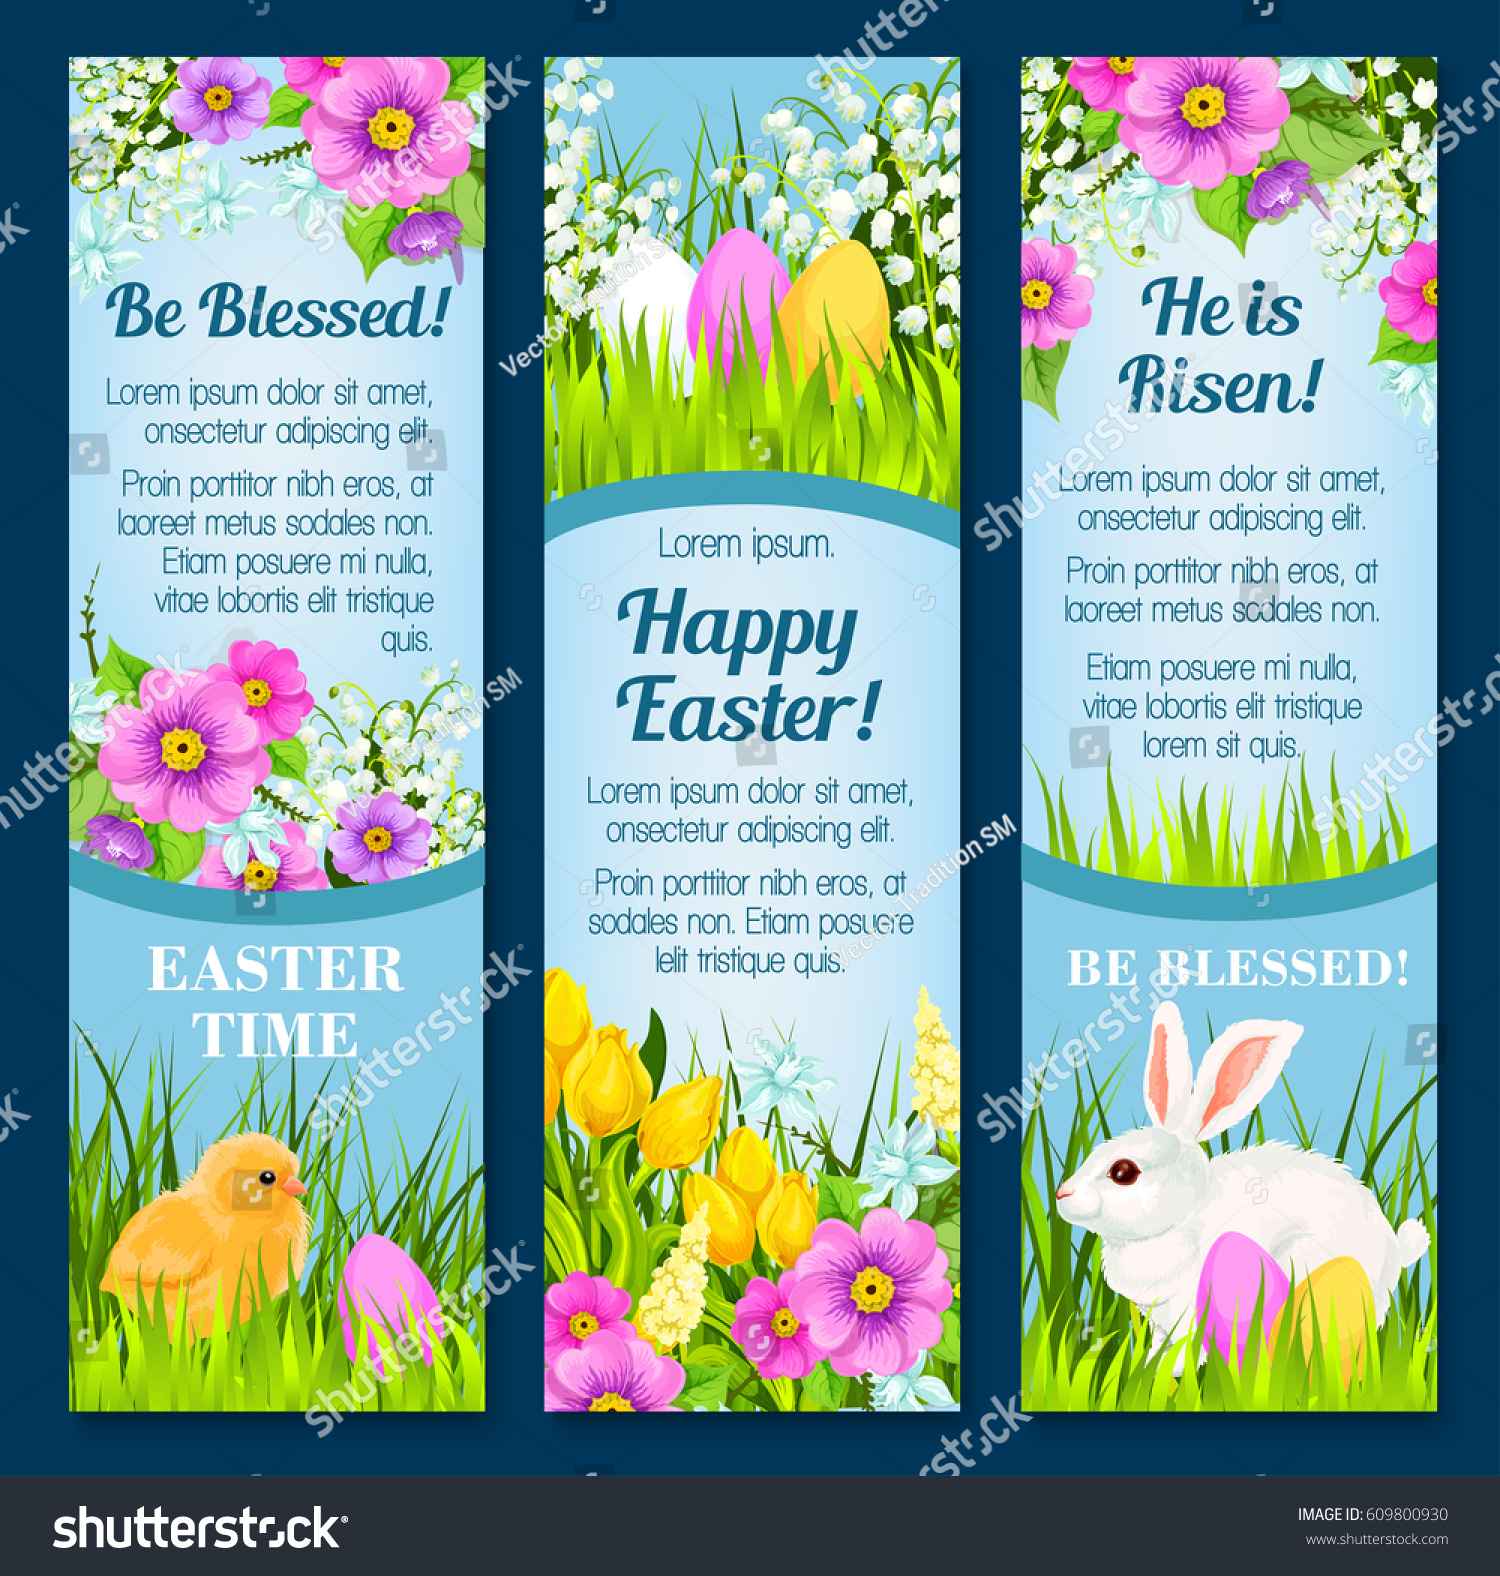 Happy Easter Greetings He Risen Be Stock Vector Royalty Free